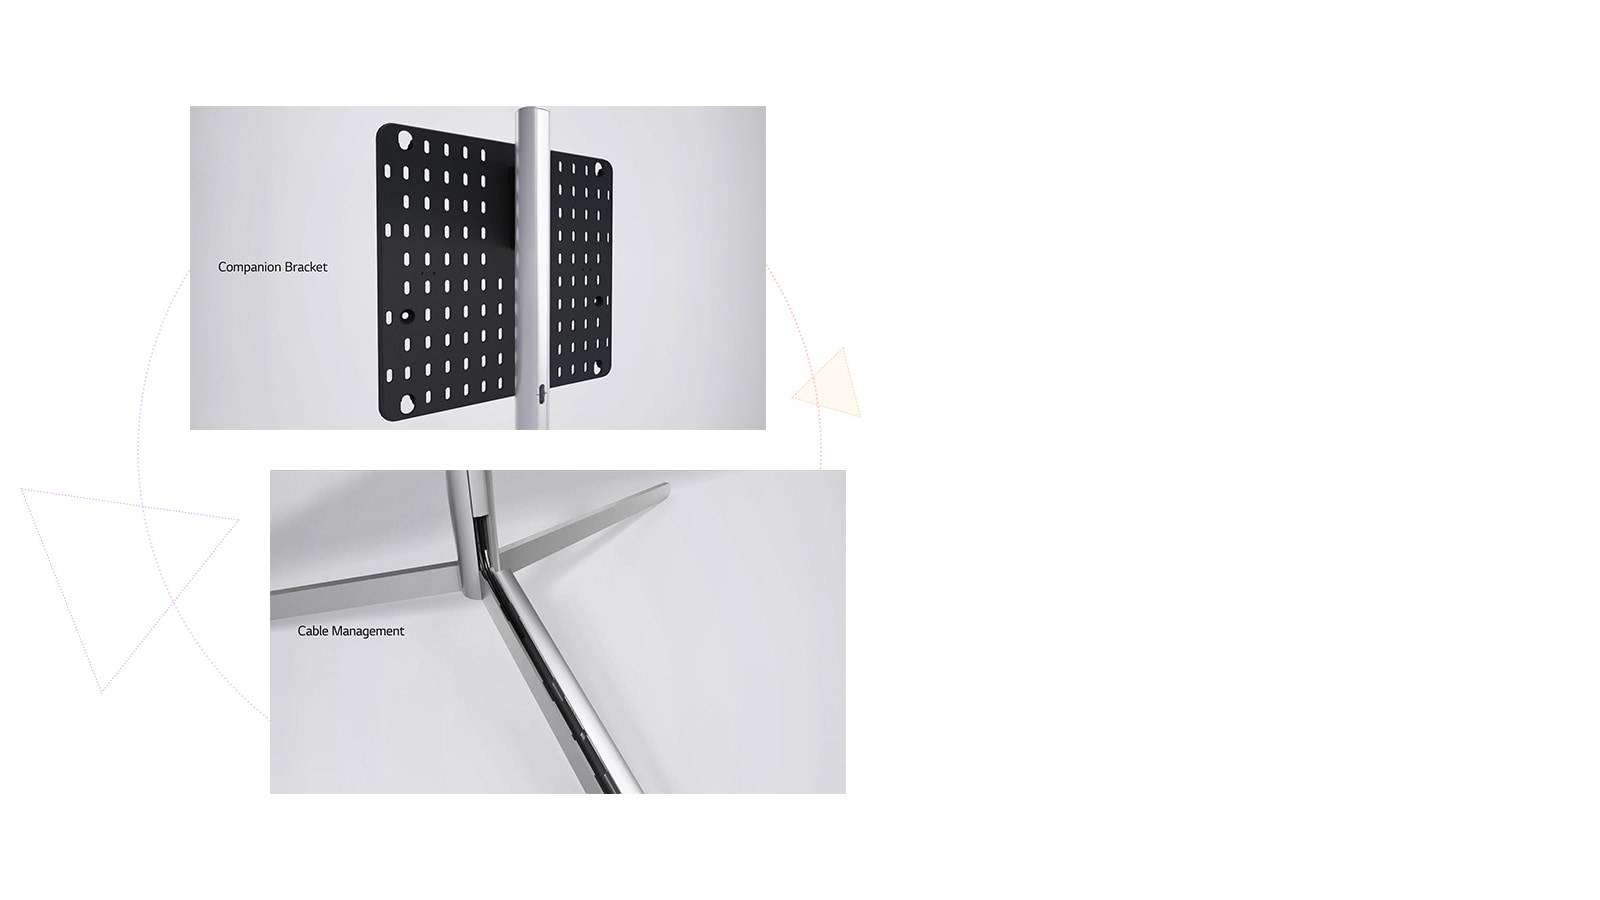 This is an image of the companion bracket and cable management.